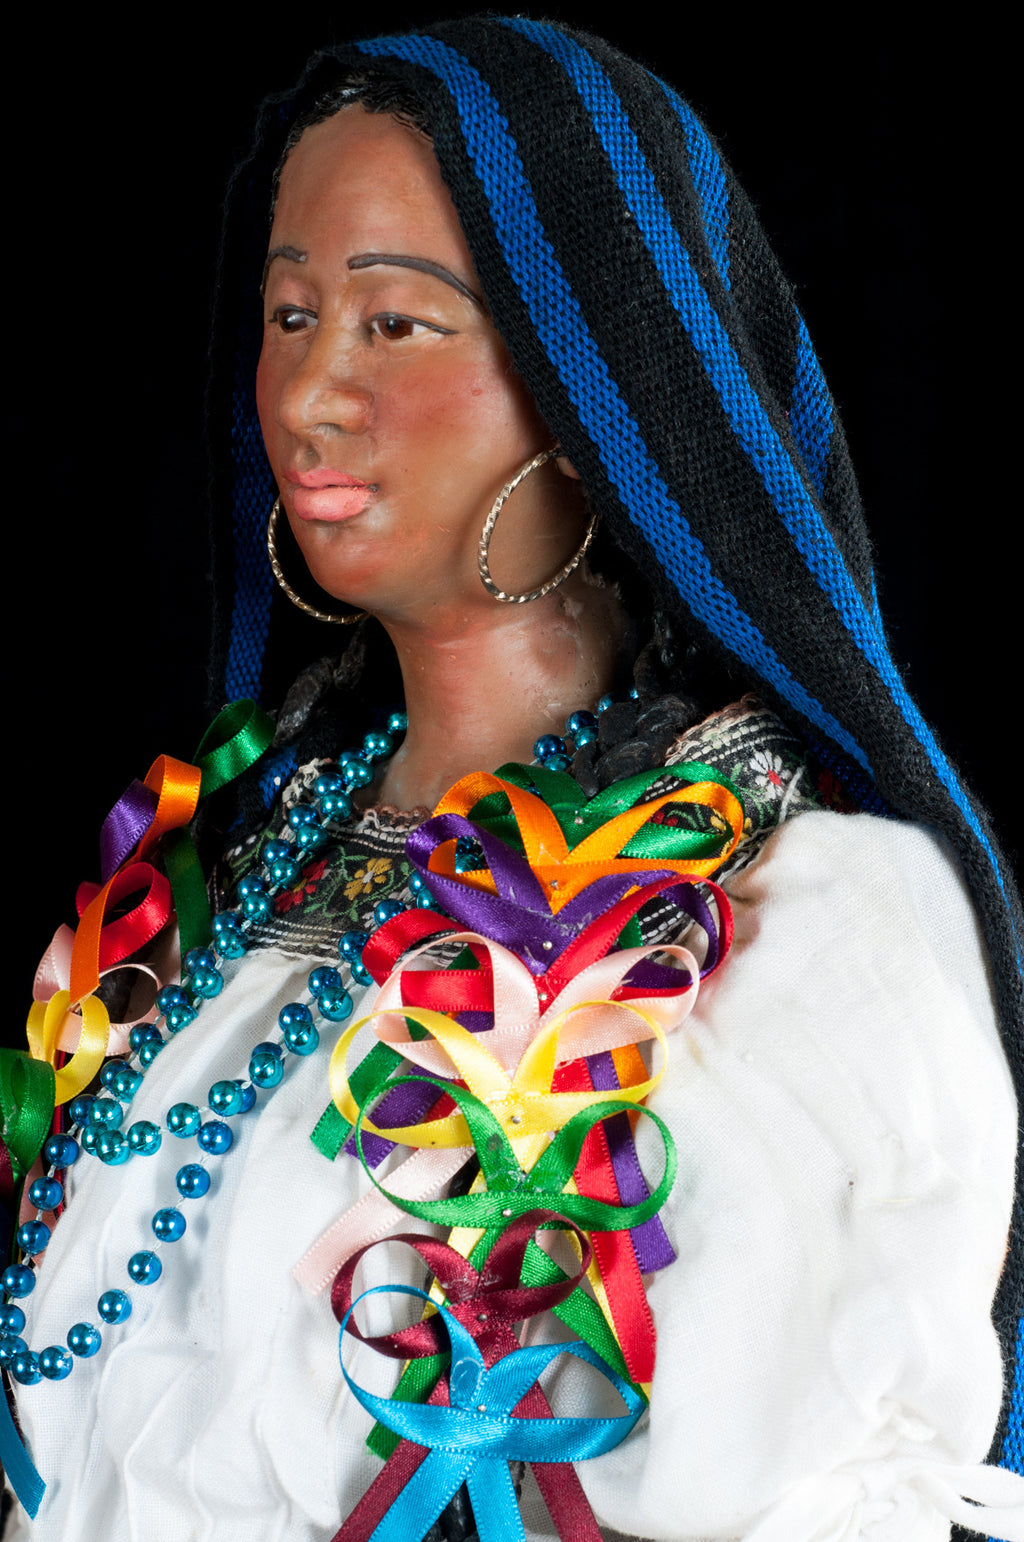 Wax sculpture from Michoacan Mexico